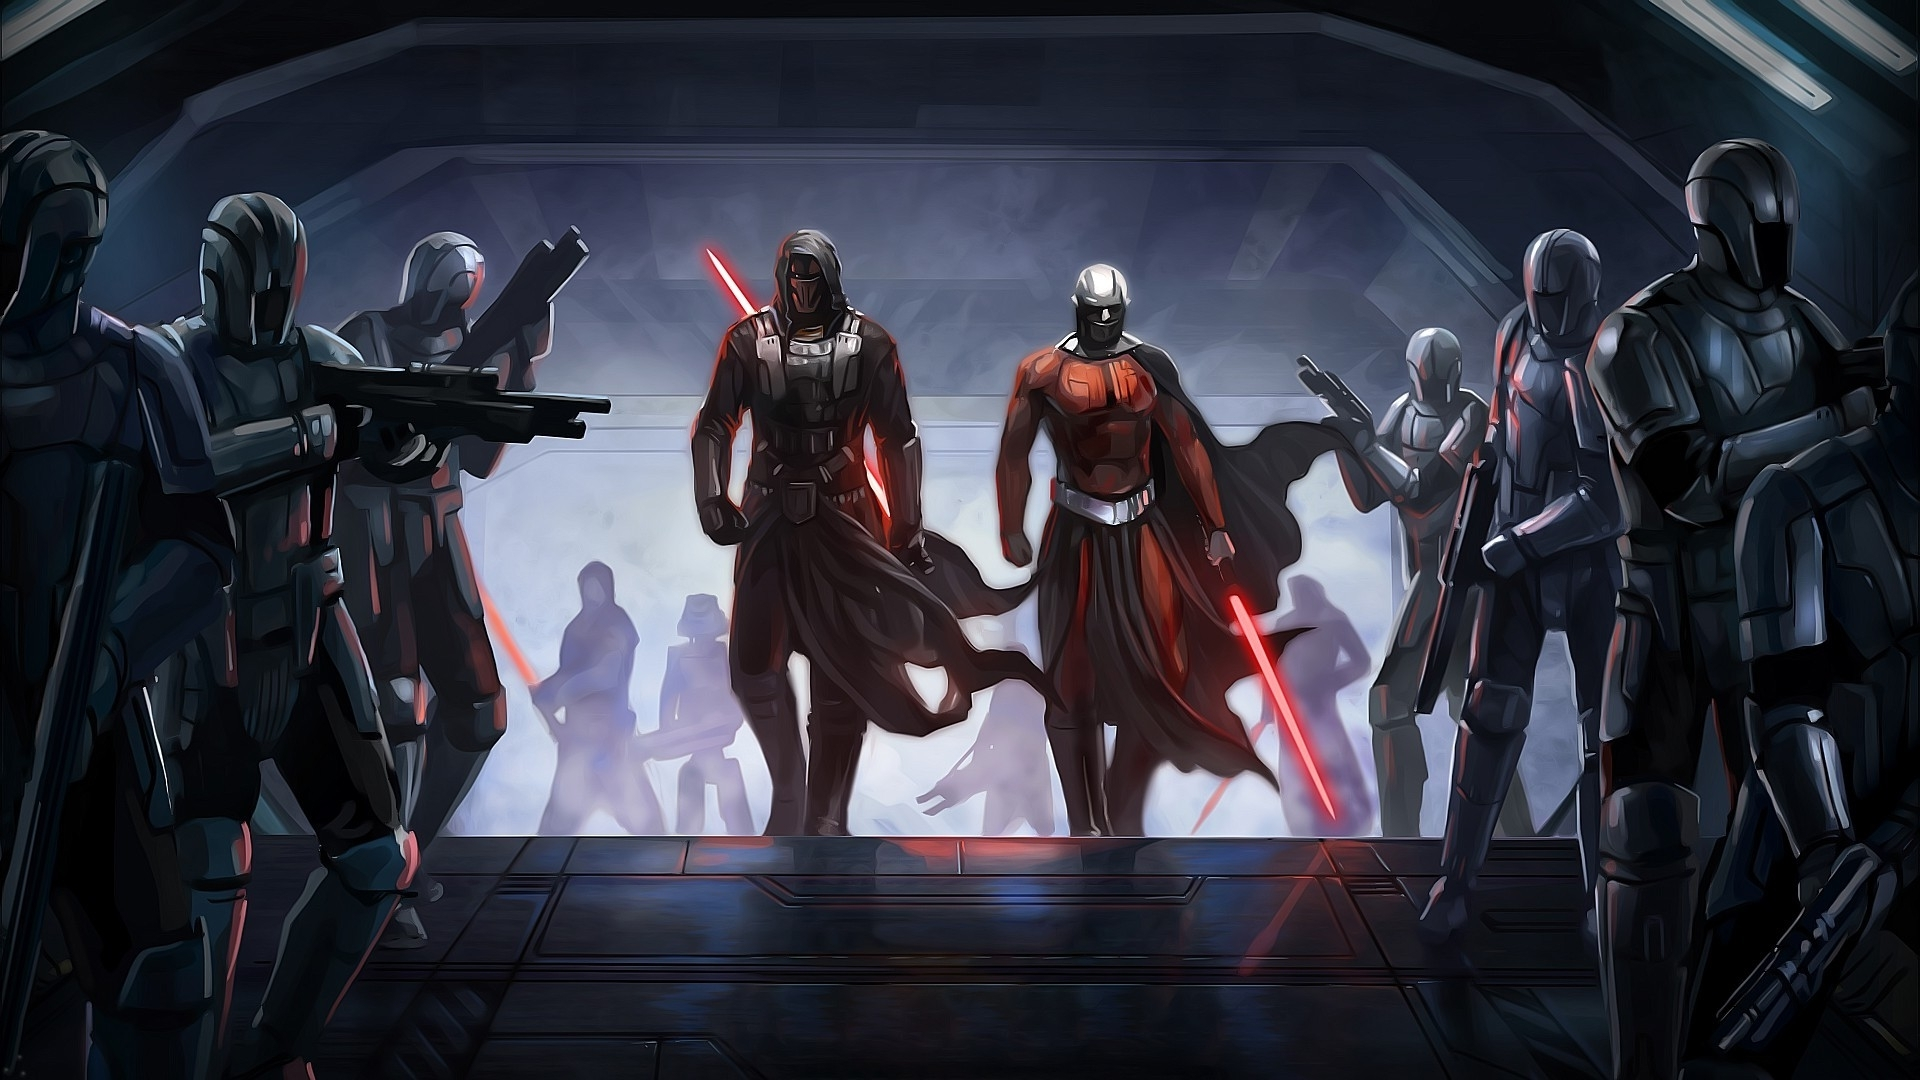 10 Top Star Wars Kotor Wallpaper FULL HD 1080p For PC Desktop